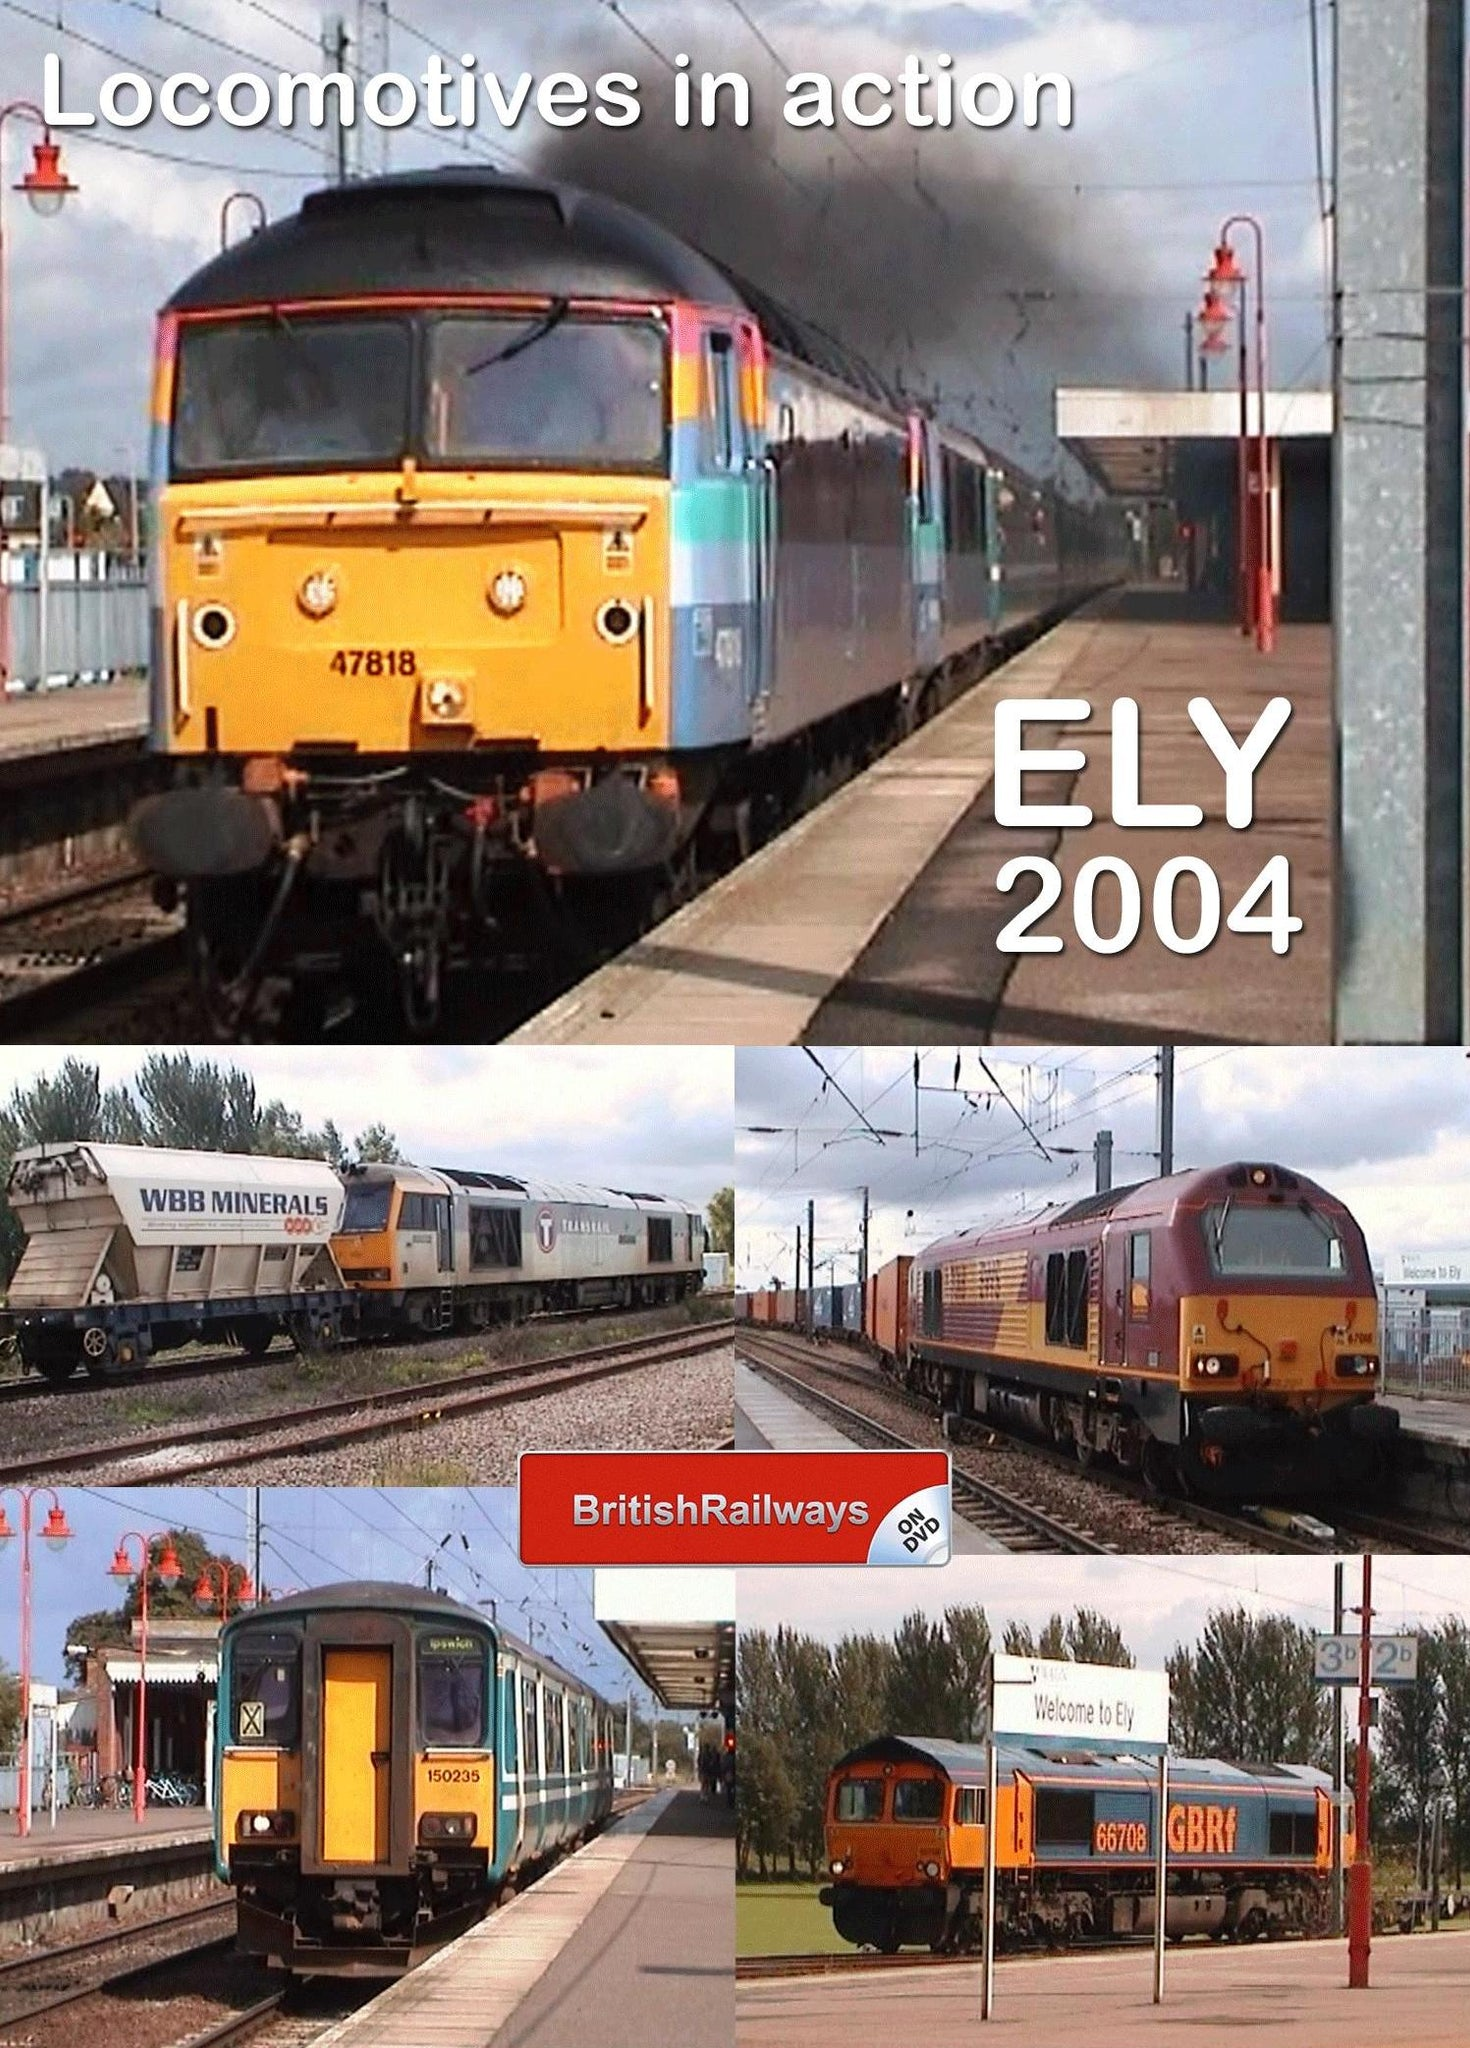 Locomotives in action at Ely 2004